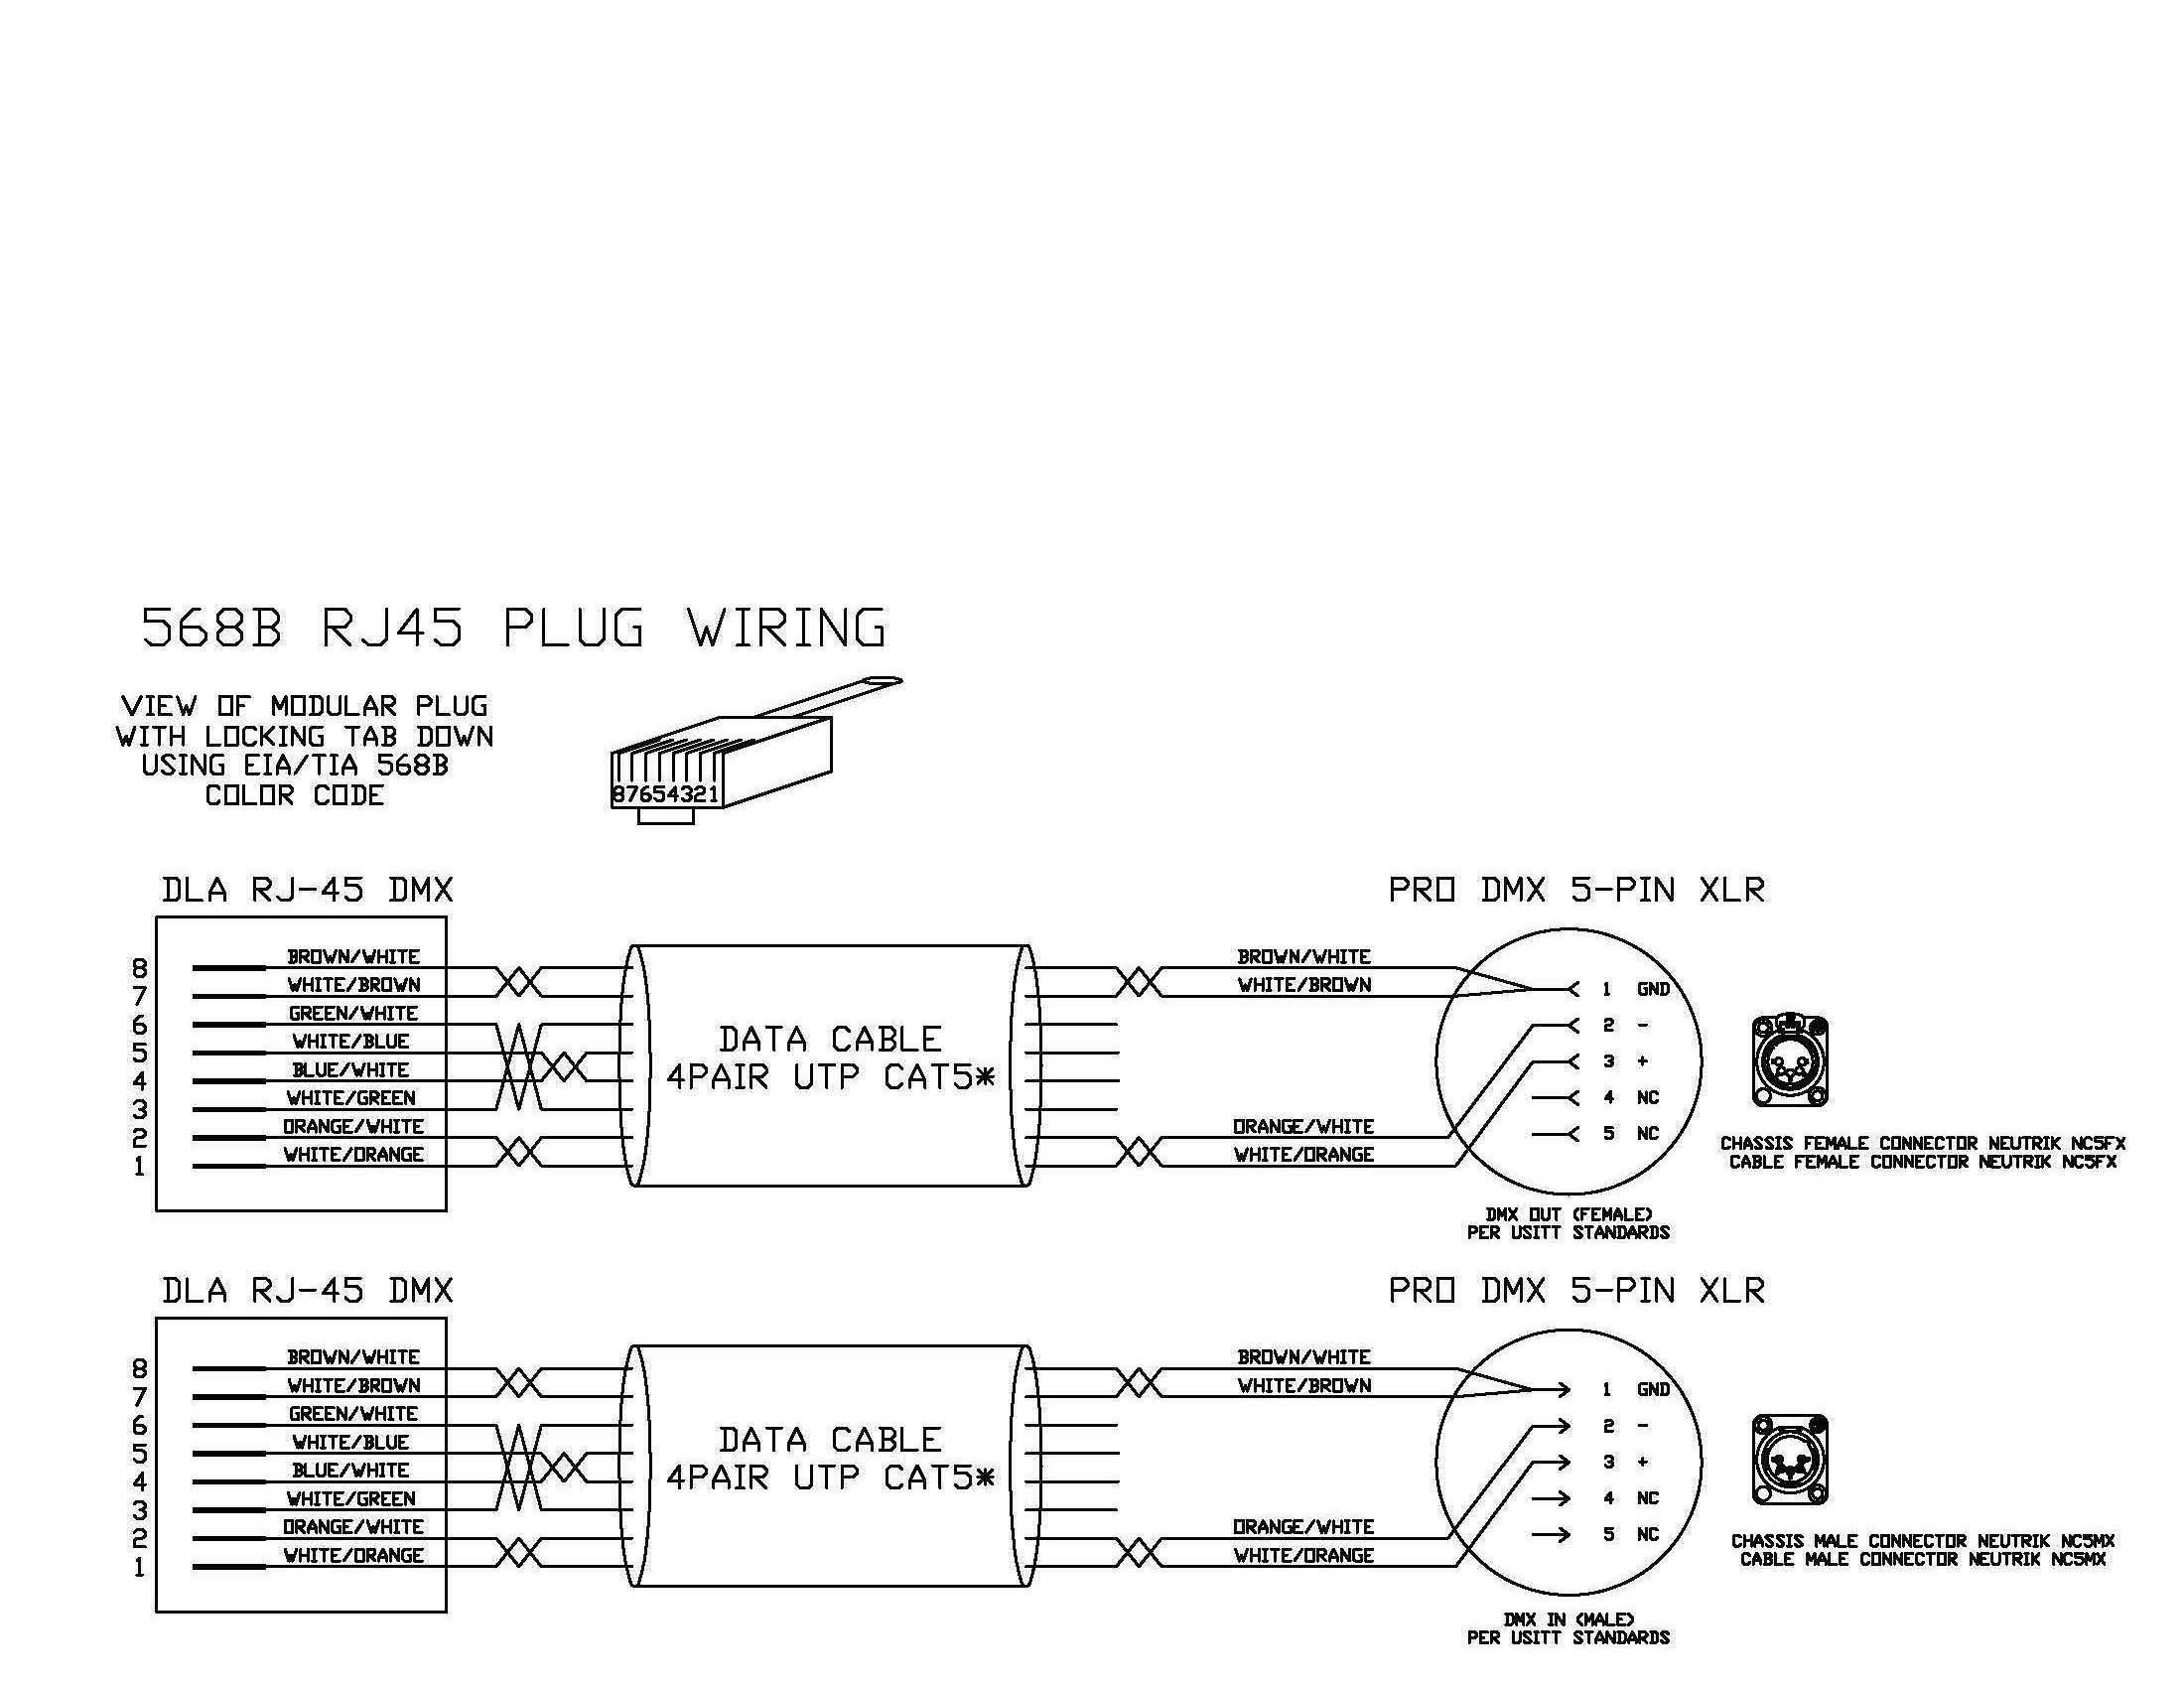 e975ddb6a839e630c21b81db05ca4fa6 xlr to rj45 wiring diagram xlr electrical wiring diagrams xlr wiring color codes at couponss.co